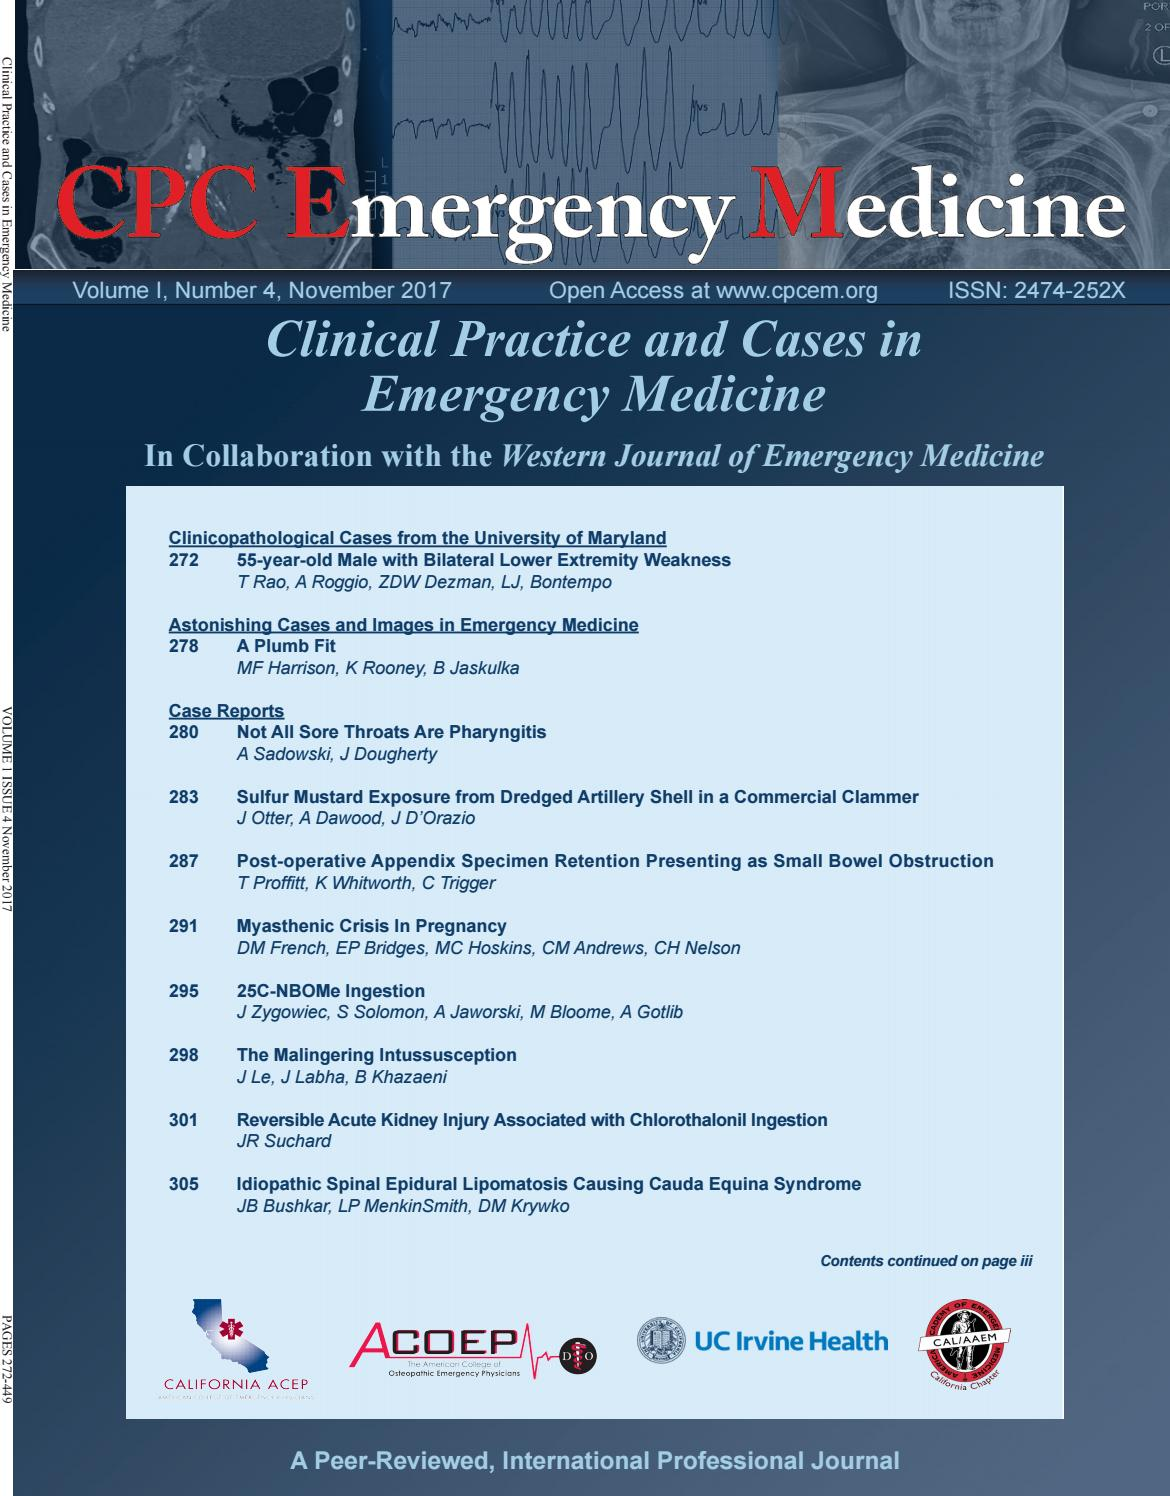 Clinical Practice and Cases in Emergency Medicine Volume 1 Issue 4